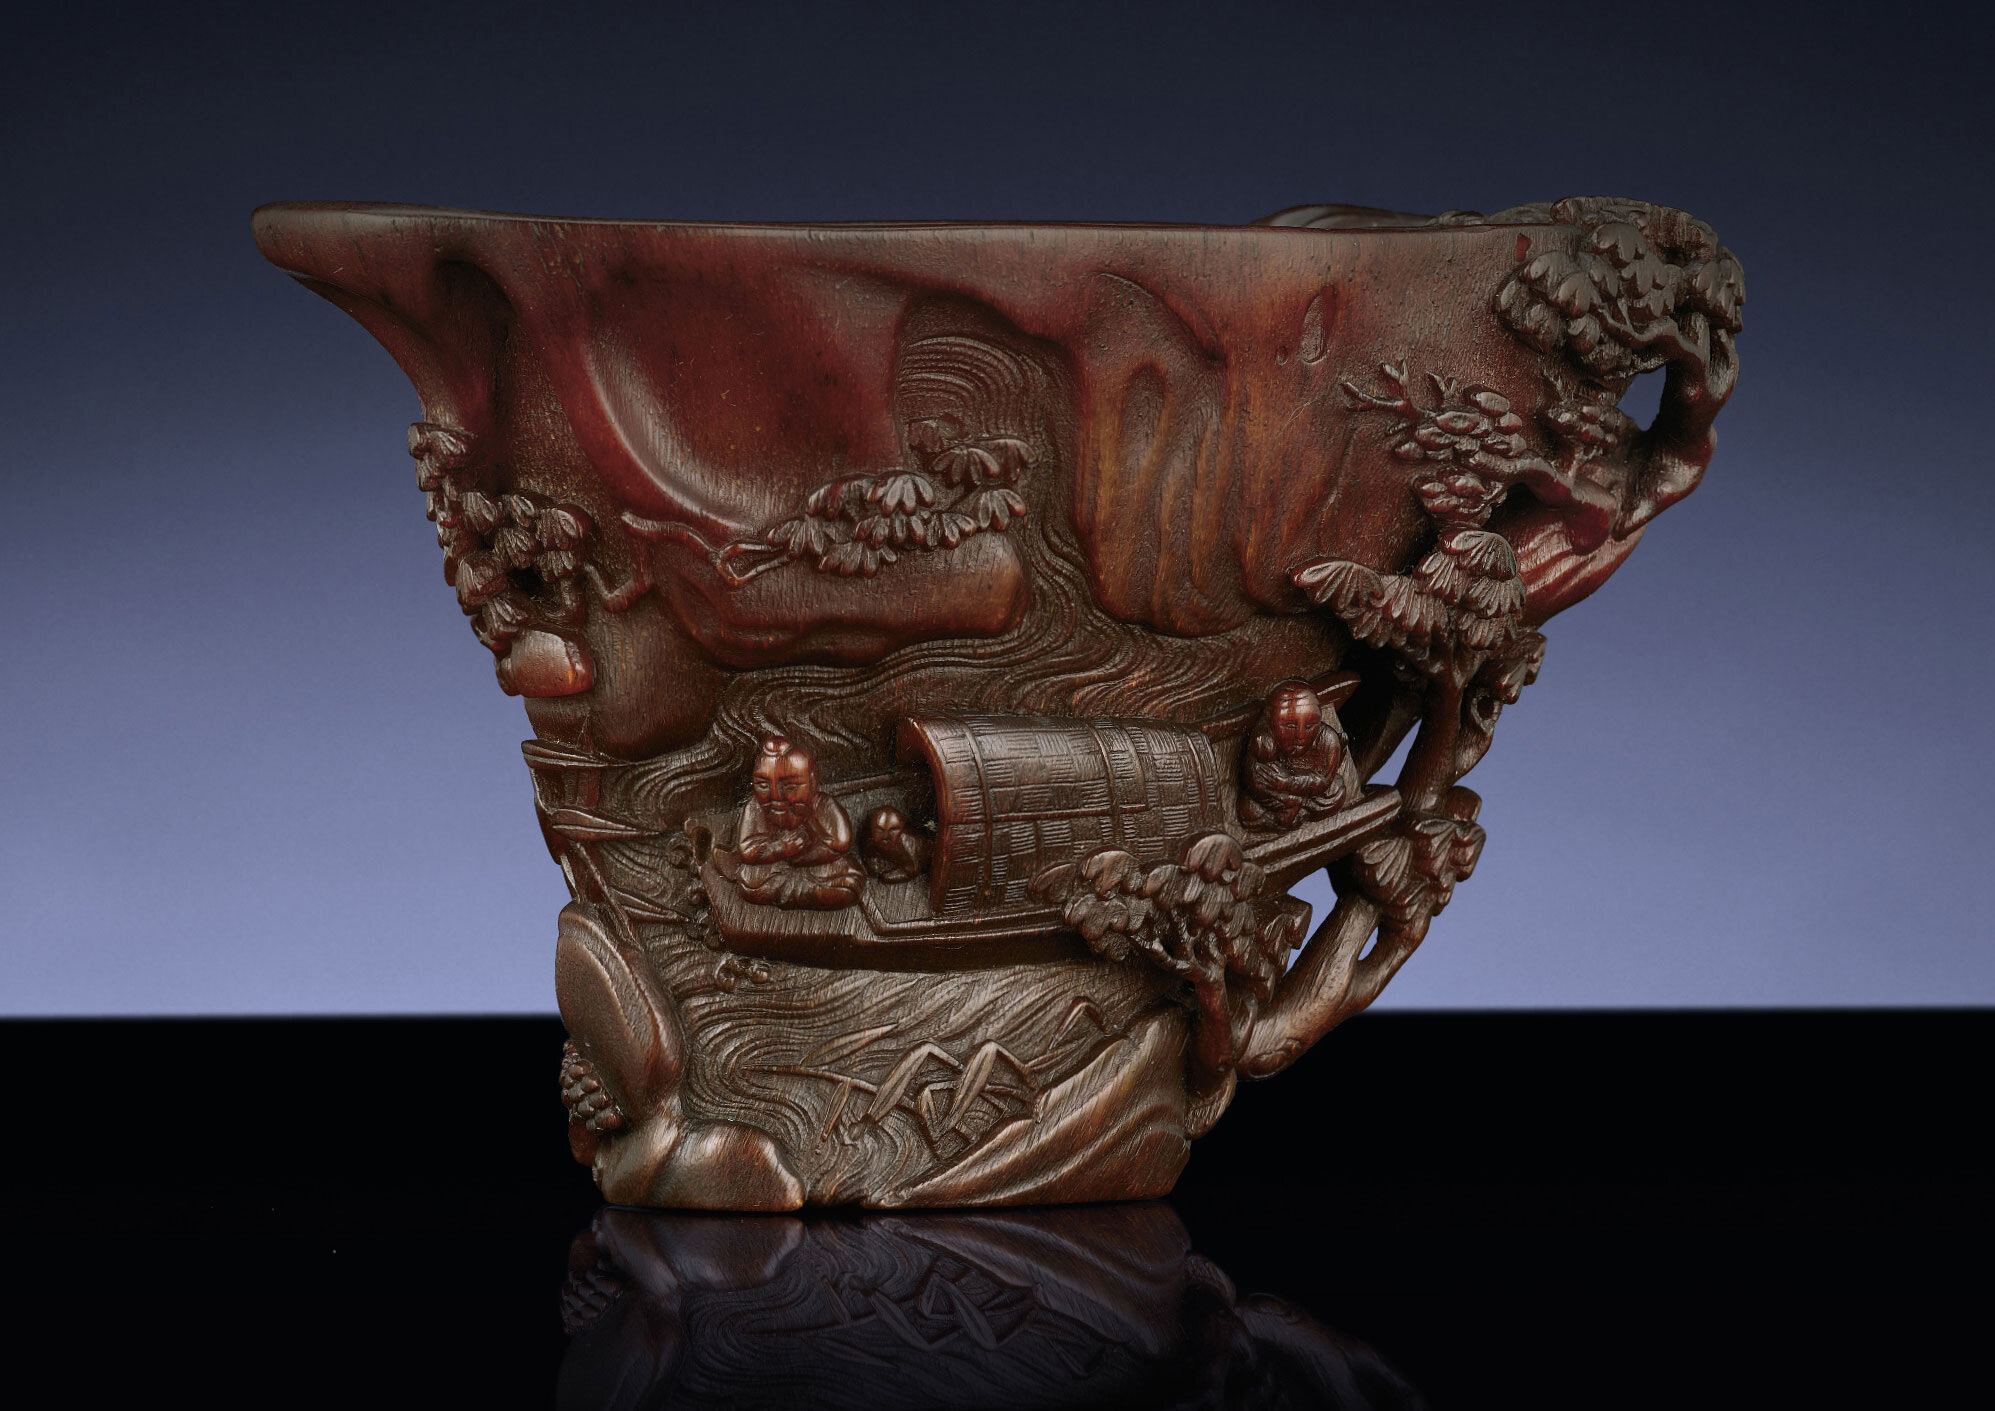 A finely carved rhinoceros horn libation cup, Qing dynasty, 17th-18th century